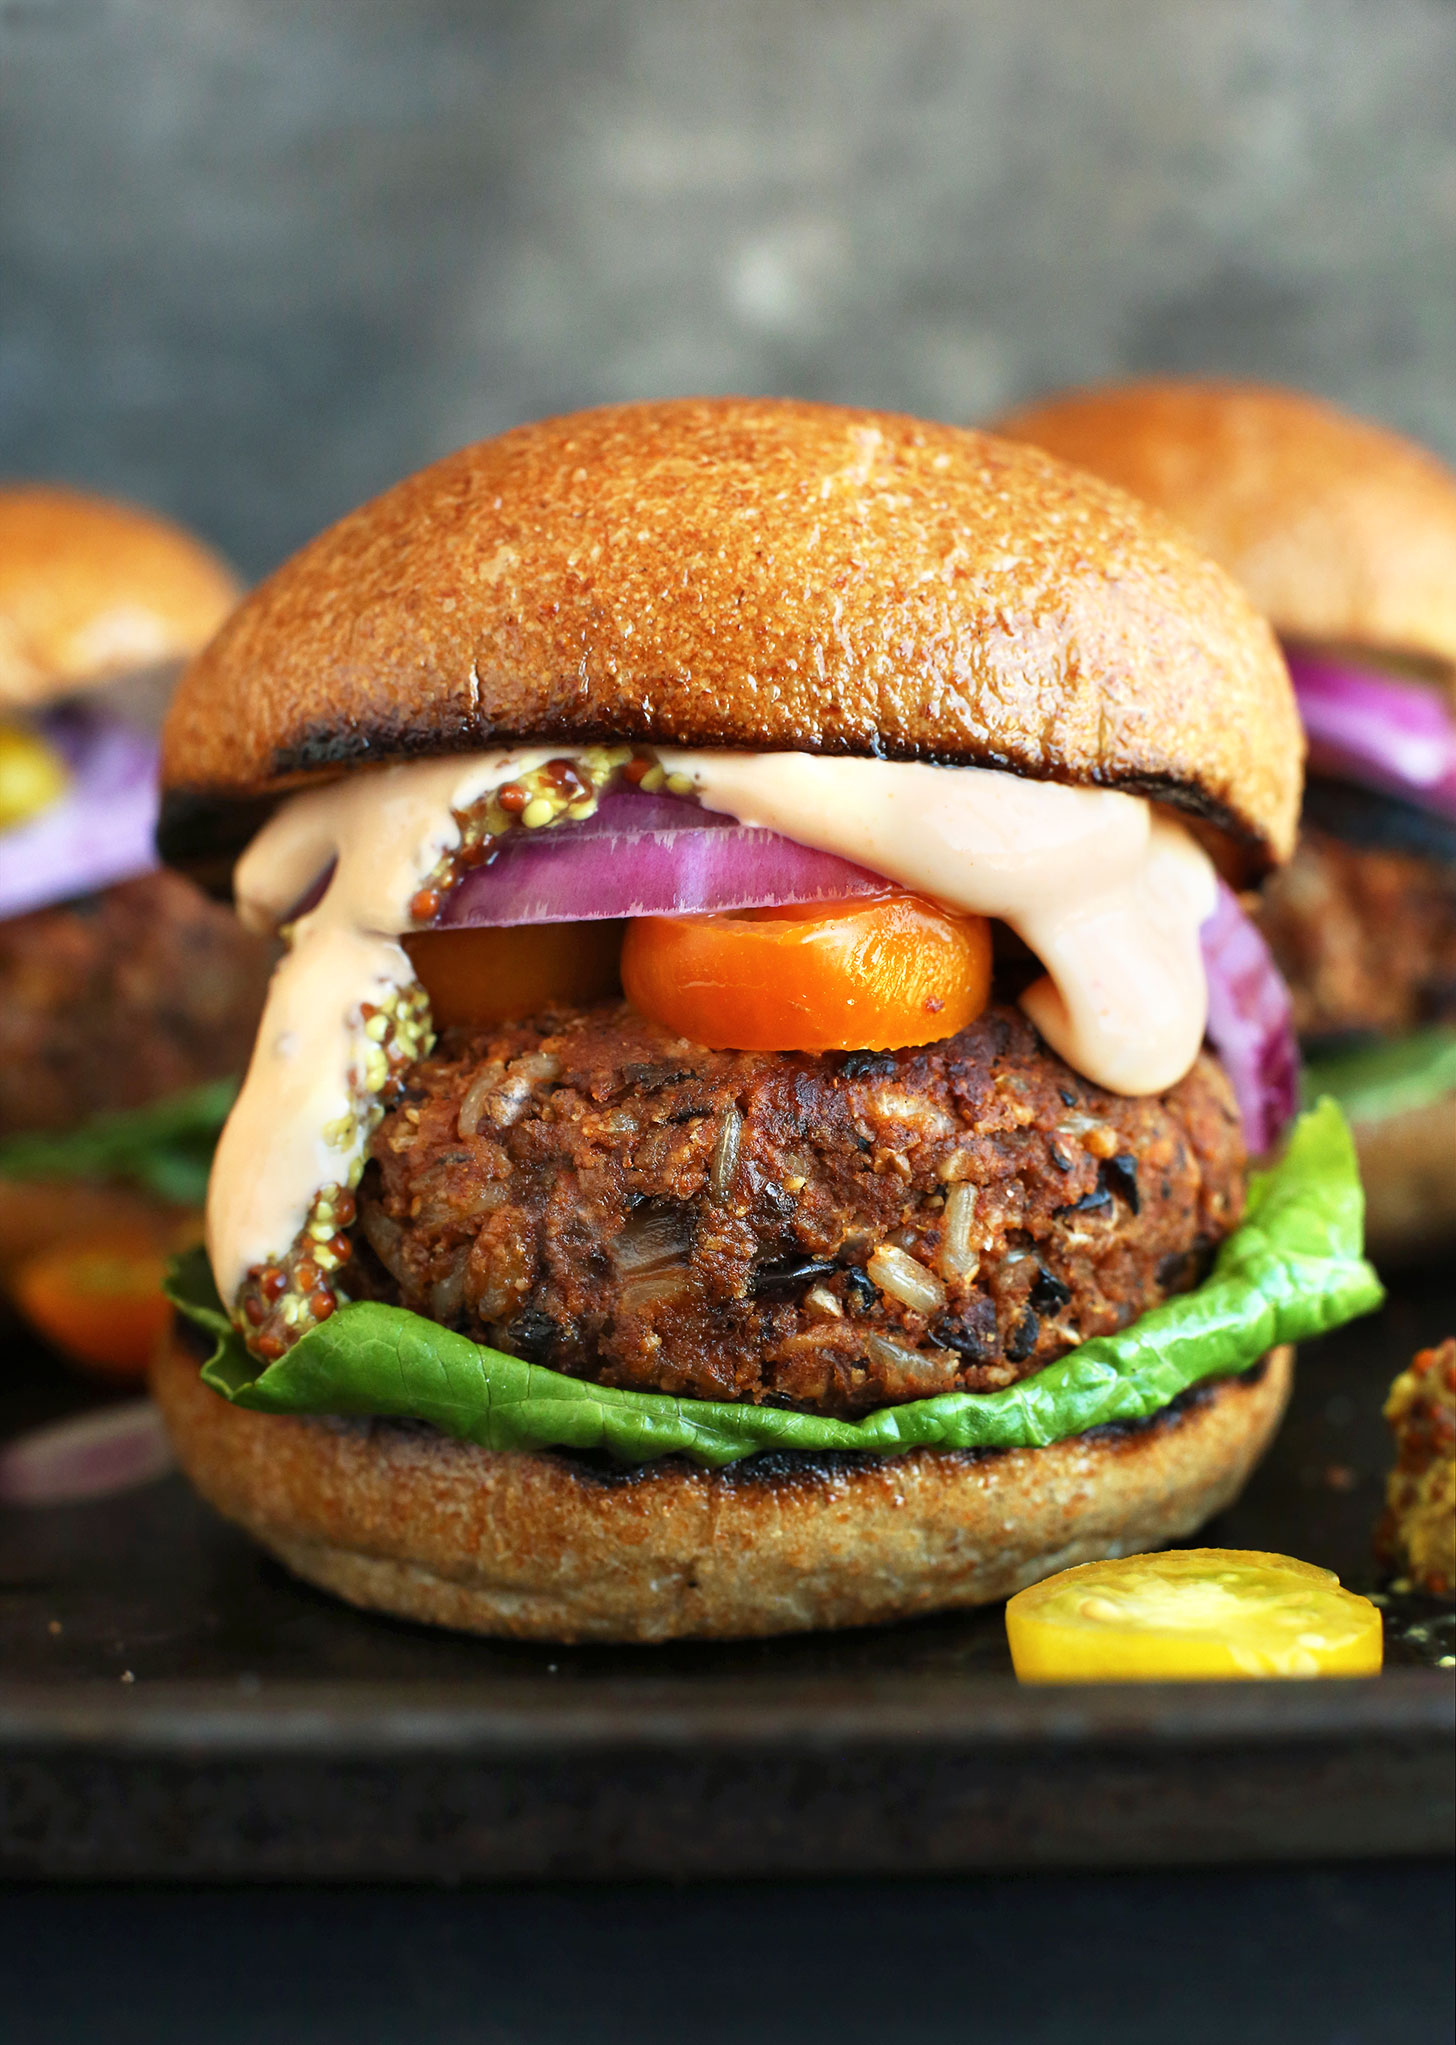 Grillable veggie burger minimalist baker recipes an amazing grillable veggie burger patty on a bun with lettuce tomato onion and forumfinder Image collections